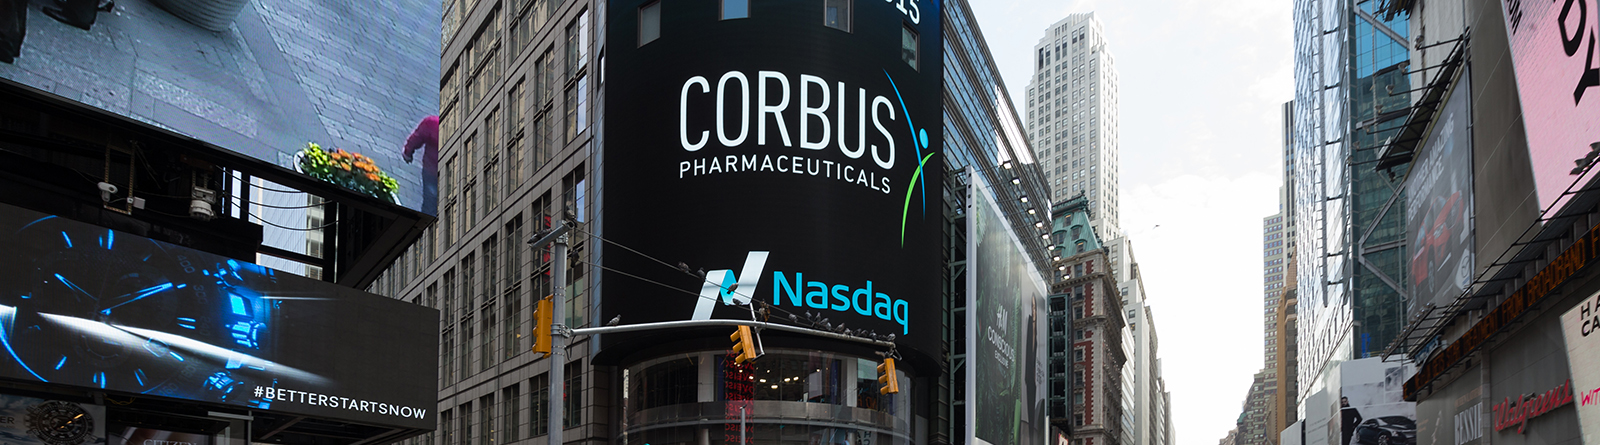 Corbus Pharmaceuticals Reports 2018 Second Quarter Financial Results and Provides Business Update Banner